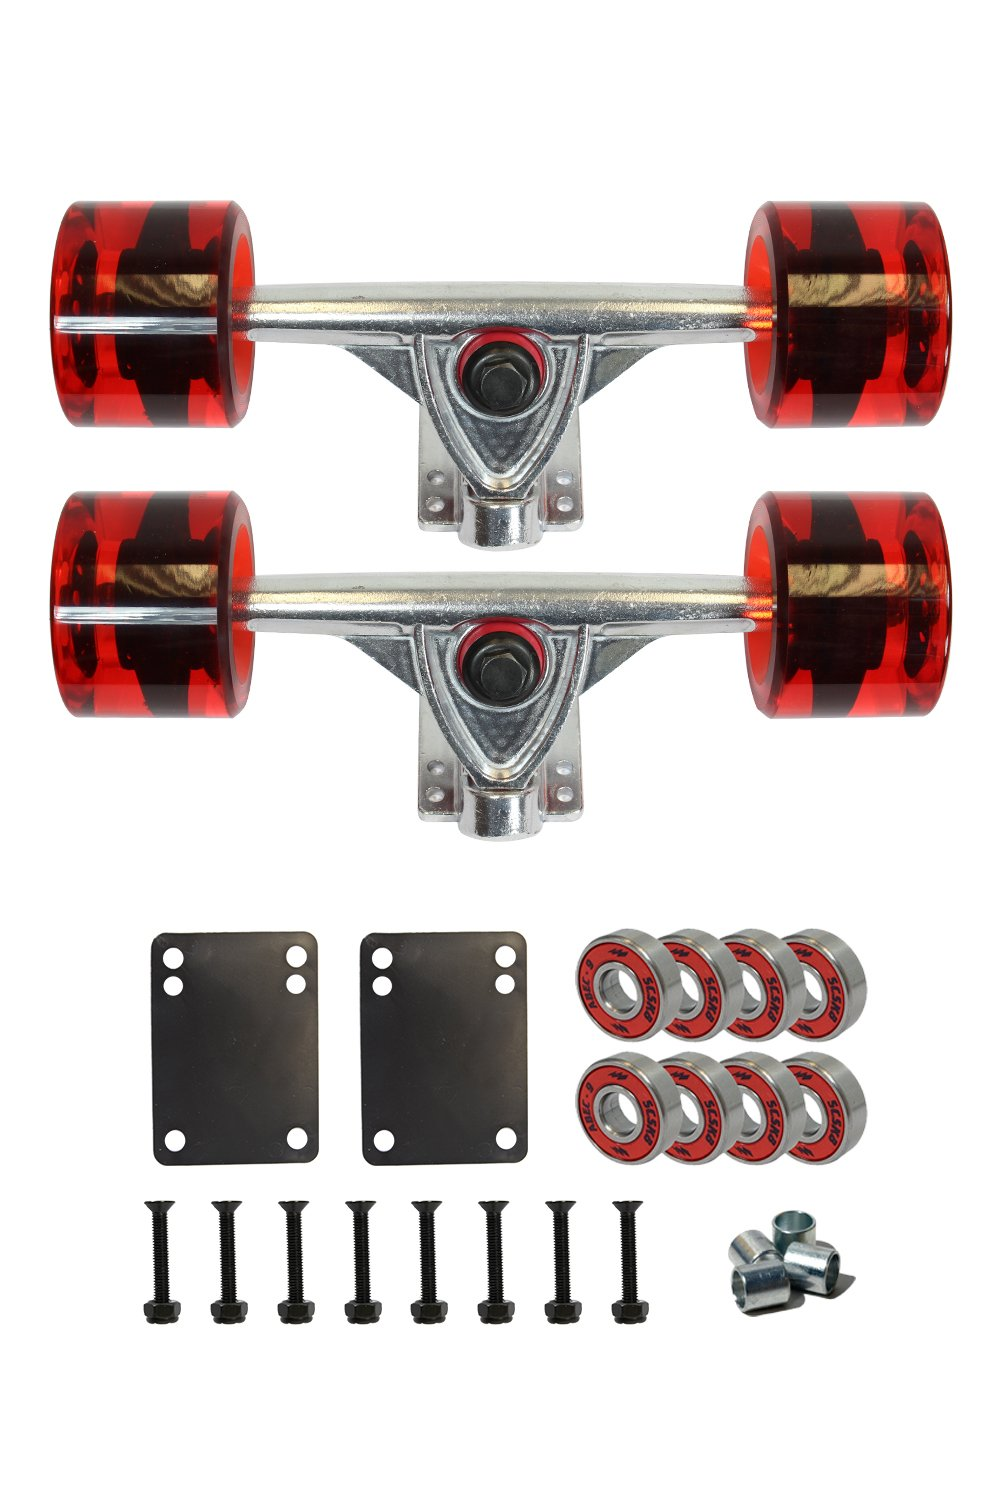 SCSK8 LONGBOARD Skateboard TRUCKS COMBO set w/ 70mm WHEELS + 9.75